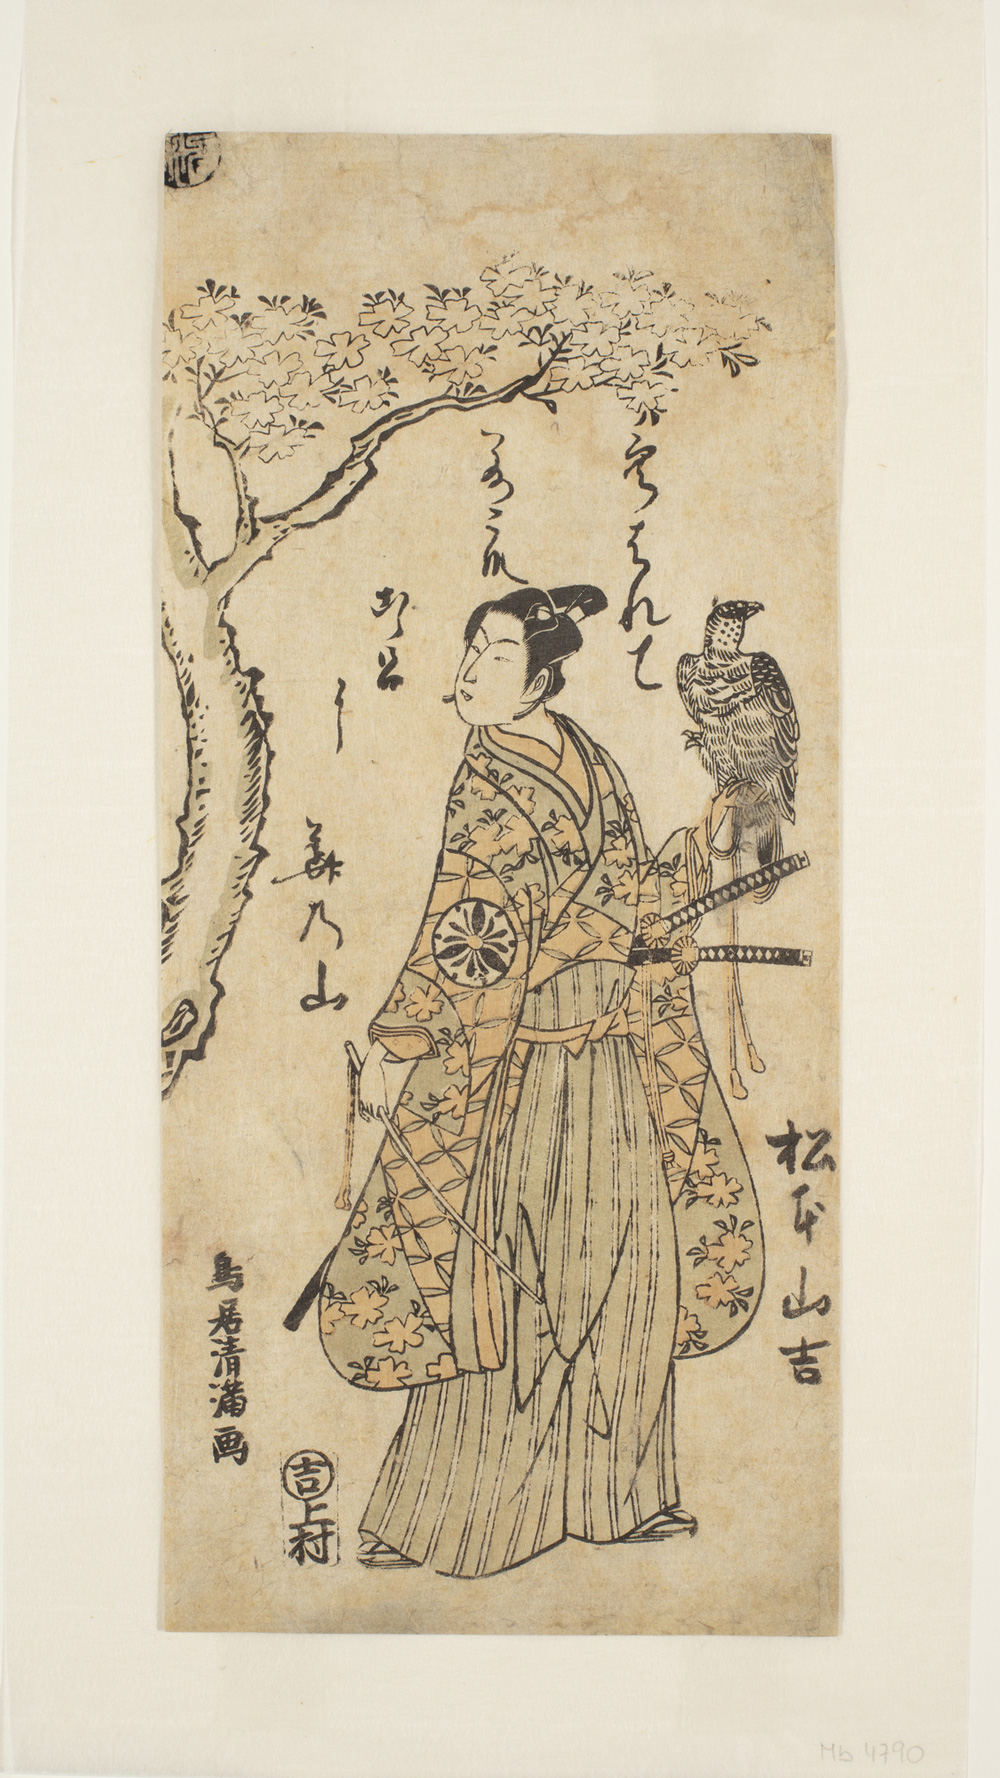 A Japanese print of an actor dressed in traditional robes by a tree. Two swords are visible and he holds a bird of prey on his left arm.